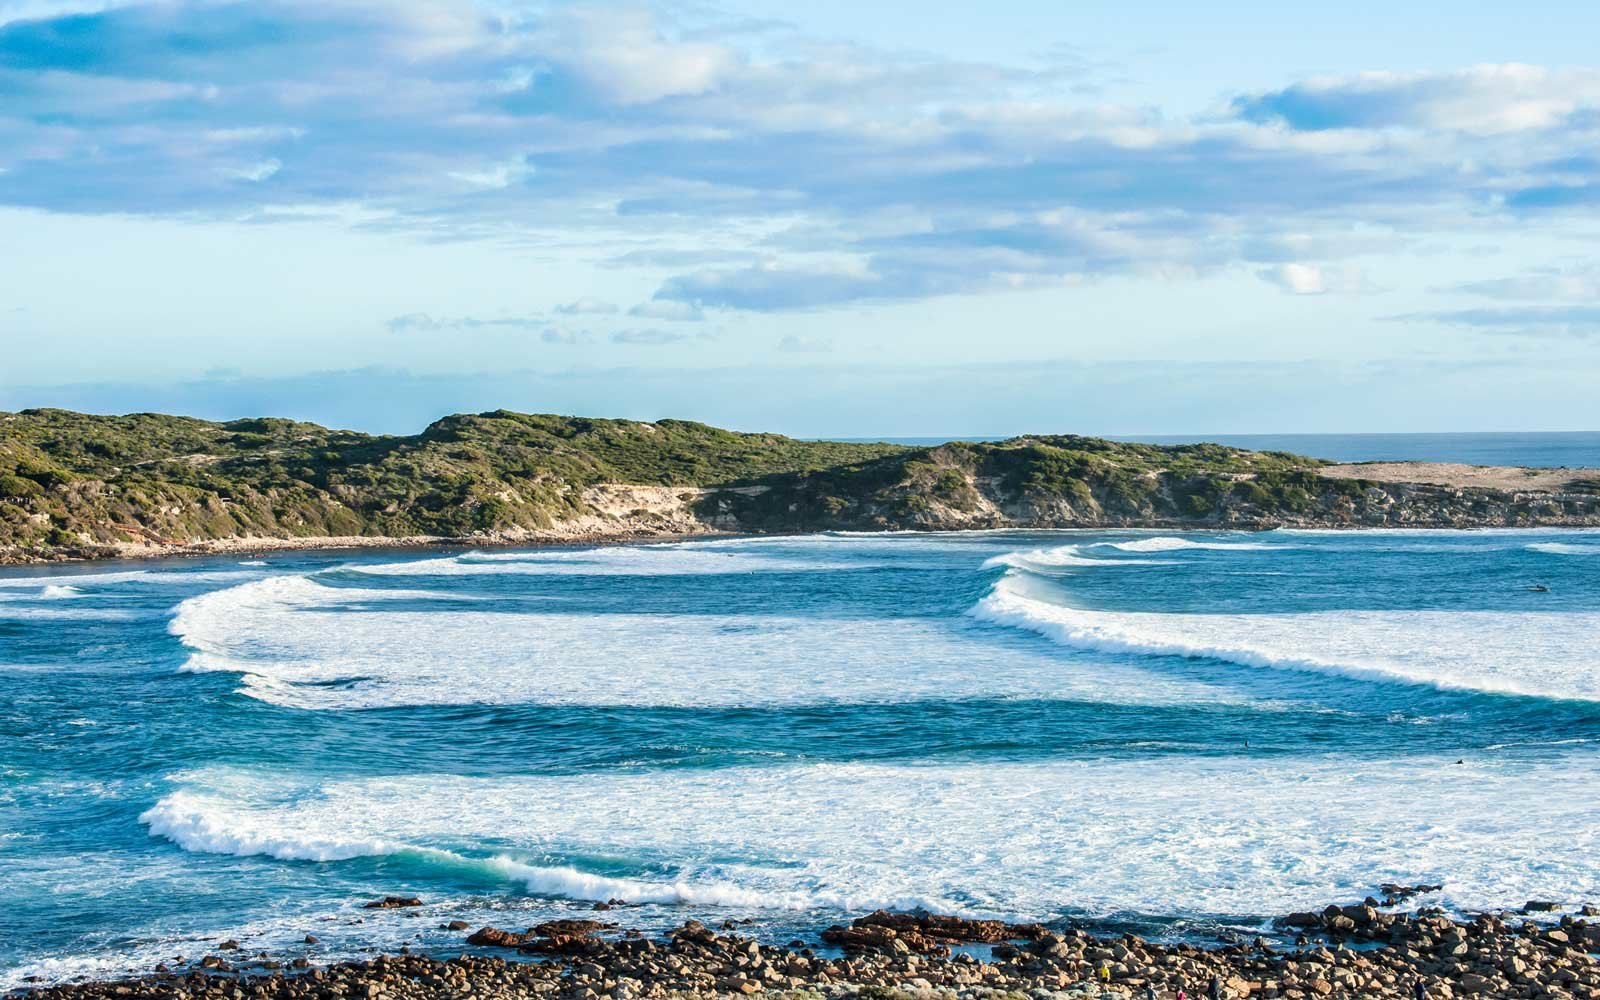 Succession of waves rolling into Cowaramup Bay with sandy headland behind